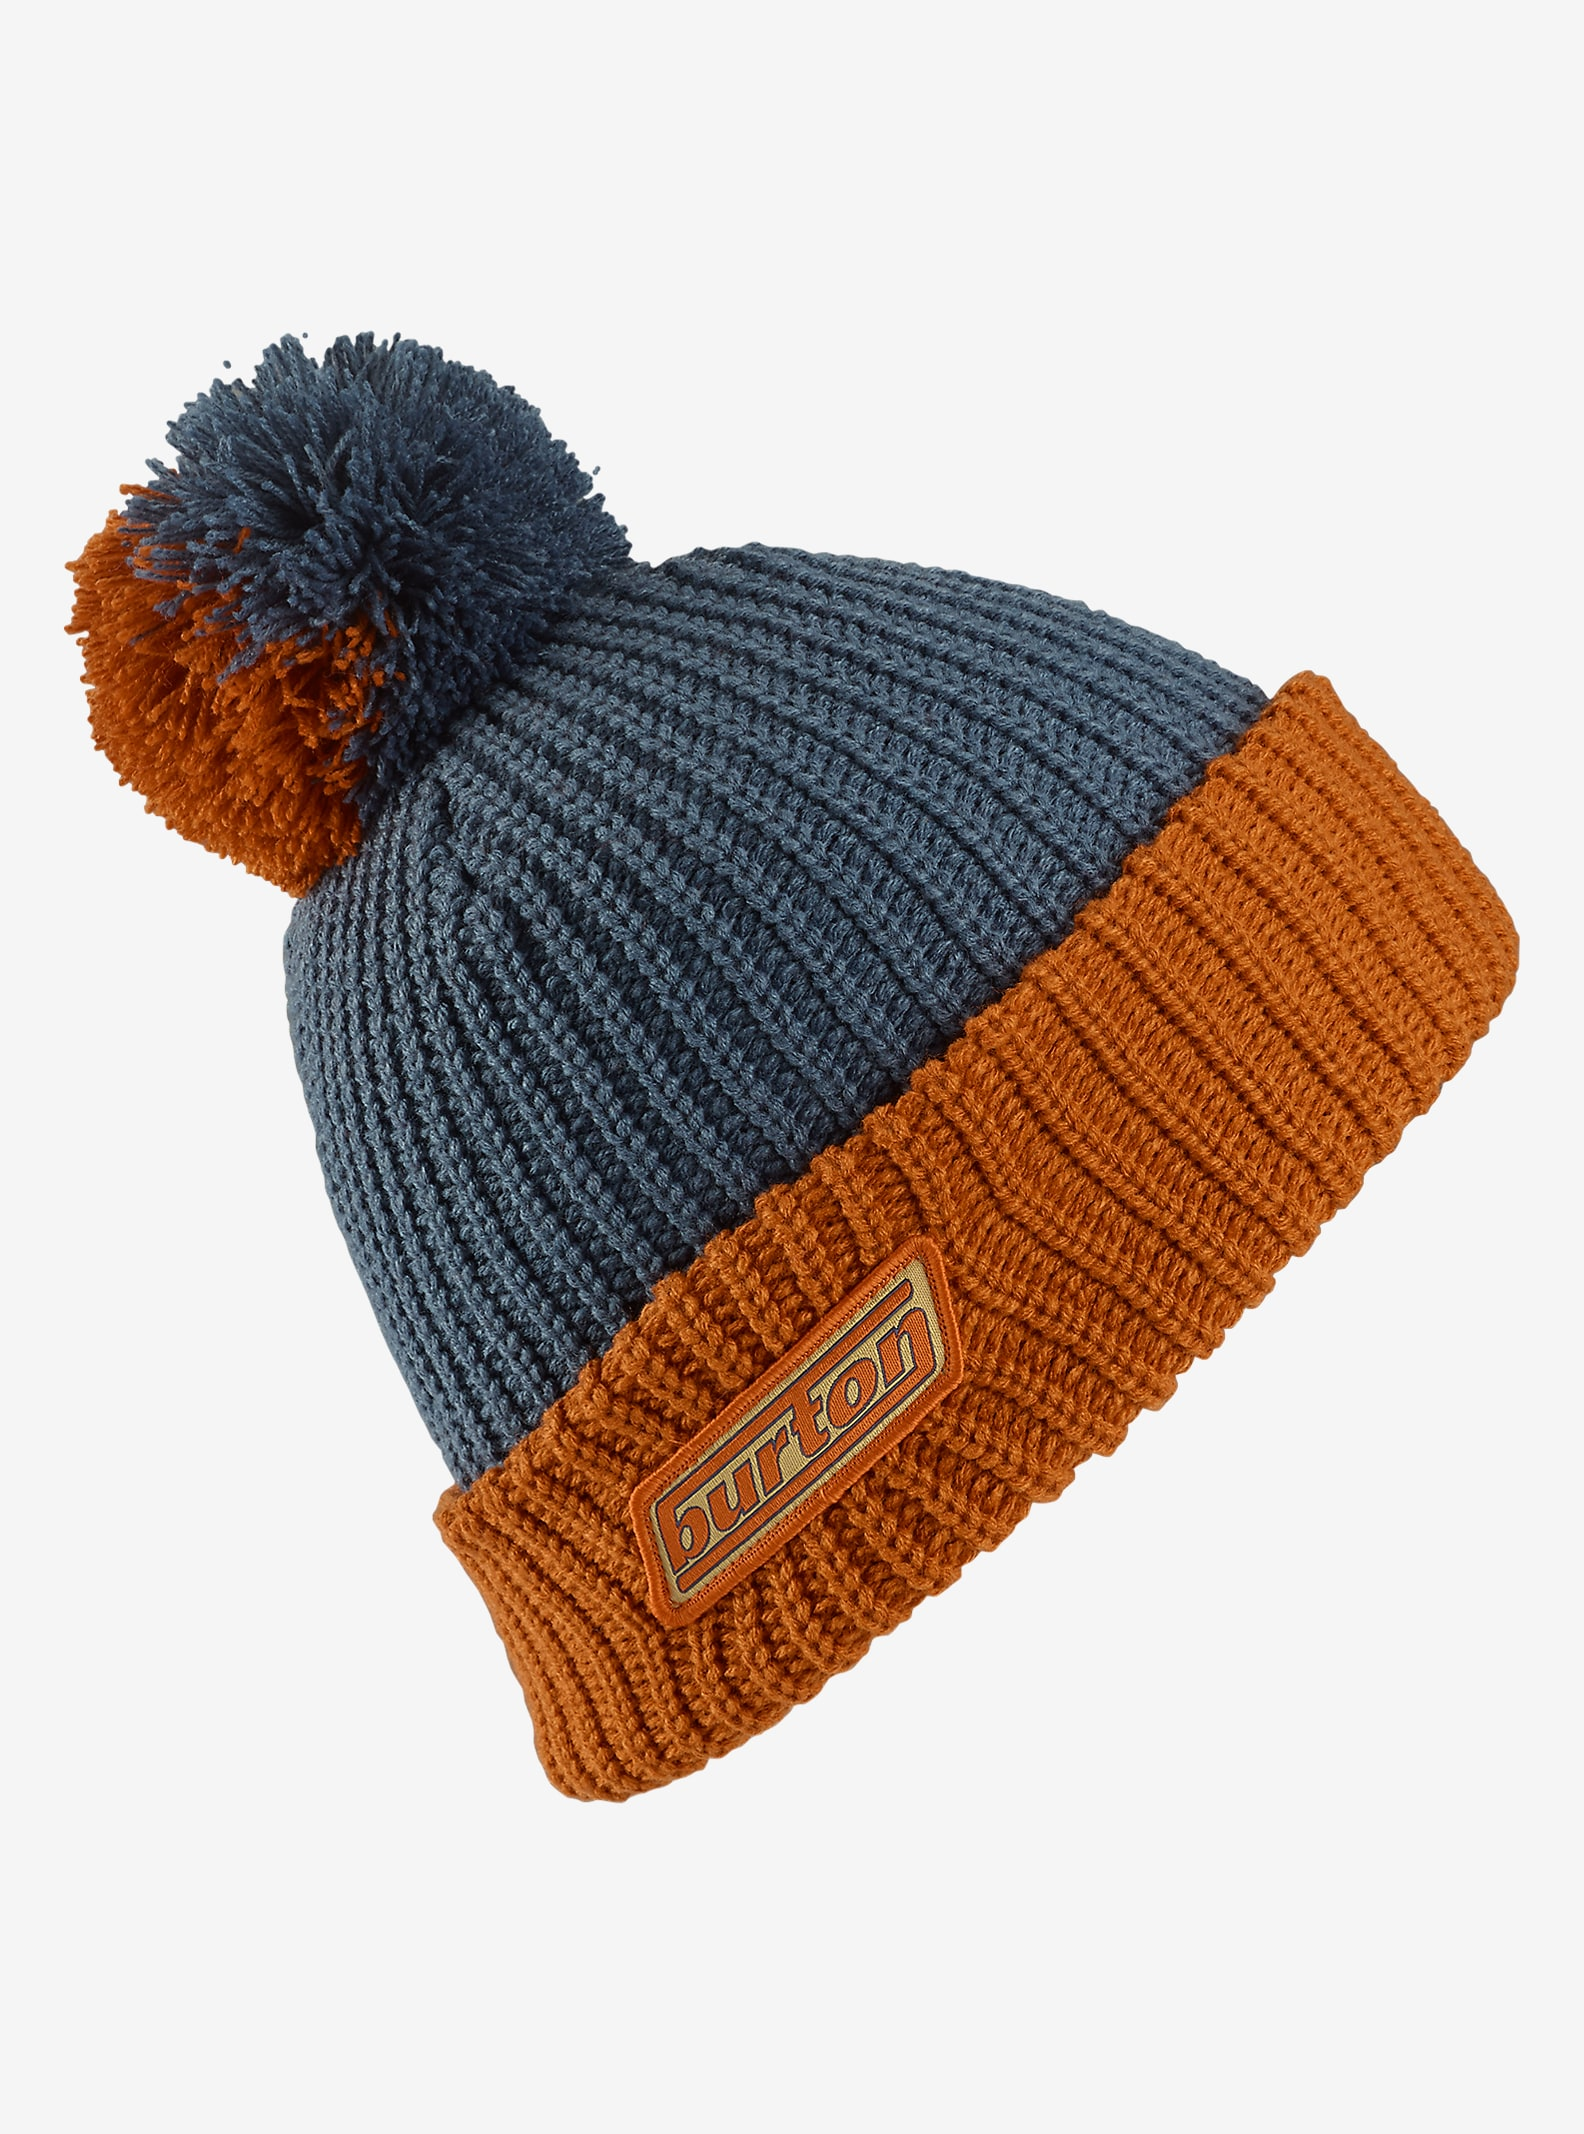 Burton 95 Beanie shown in Washed Blue / Maui Sunset